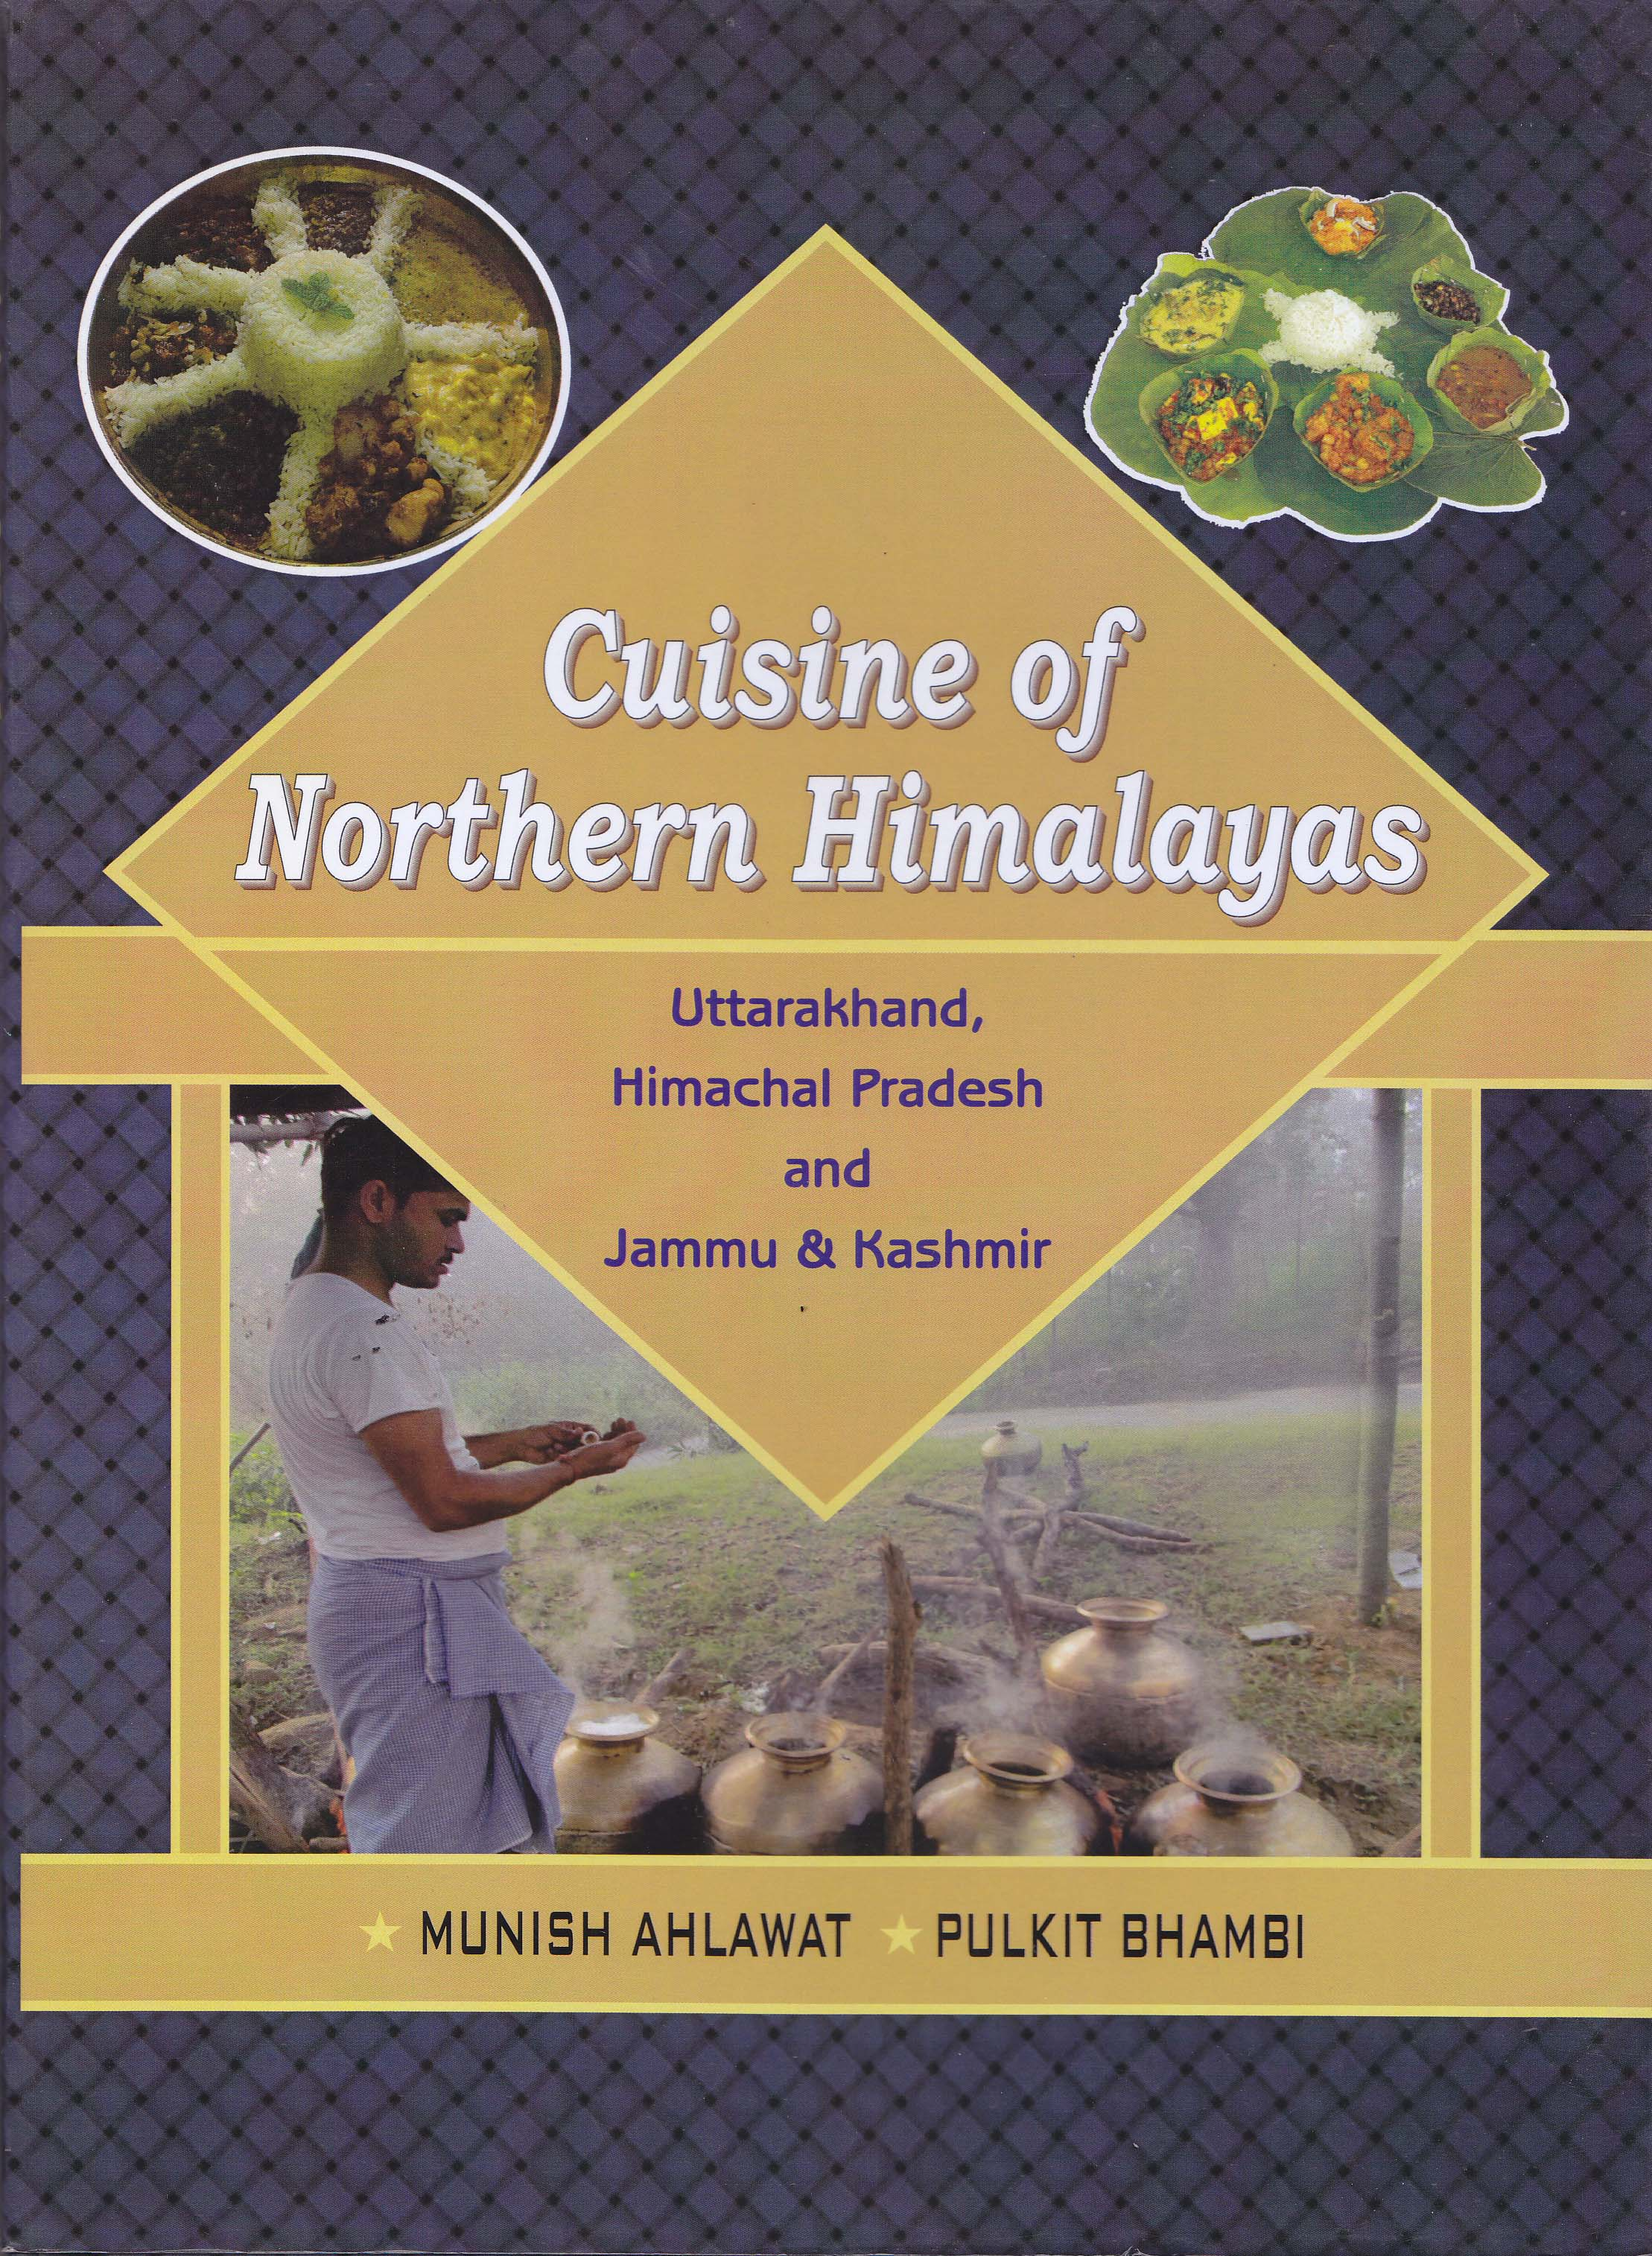 Cuisine of Northern Himalayas (Uttarakhand, Himachal Pradesh and Jammu & Kashmir) by Munish Ahlawat & Pulkit Bhambi